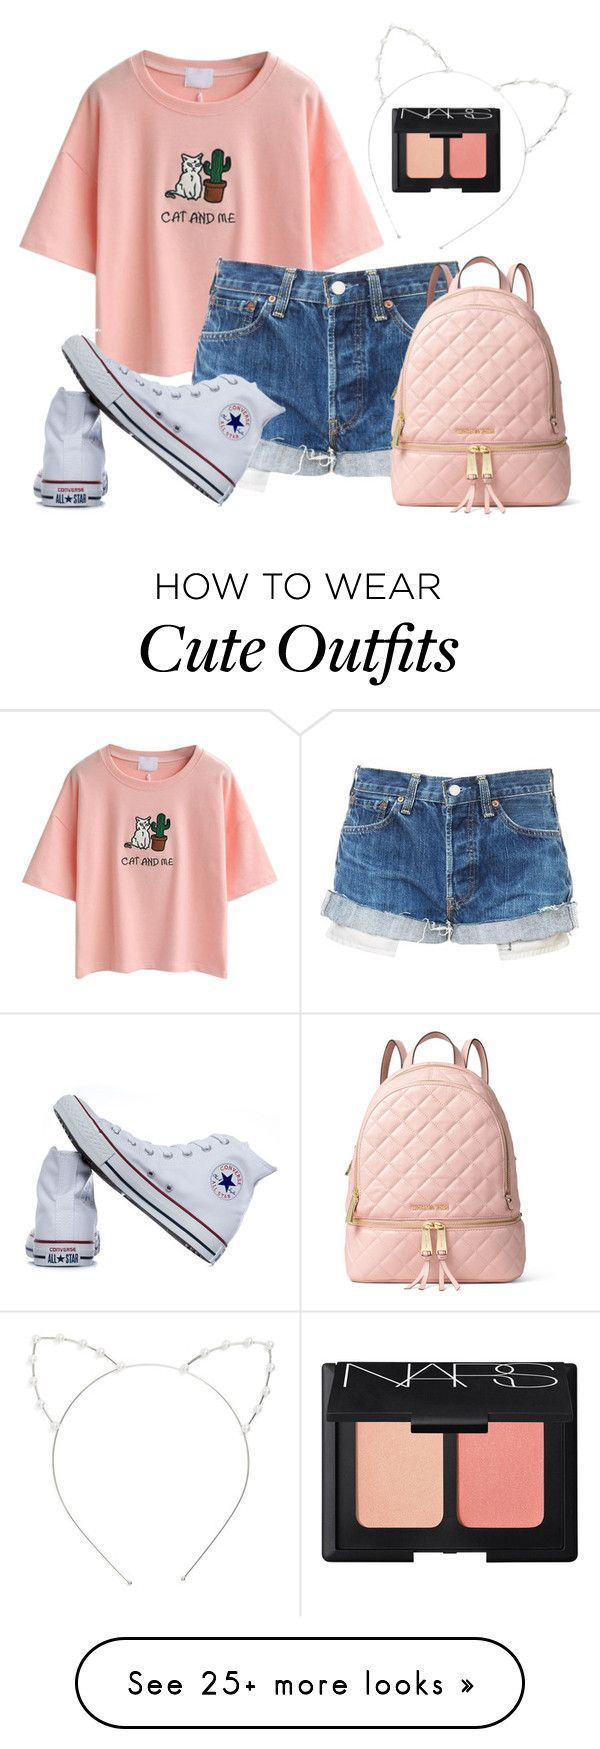 """""""Cute Cat Outfit"""" by ameliesarah on Polyvore featuring WithChic, Converse, MICHAEL Michael Kors, Cara and NARS Cosmetics"""